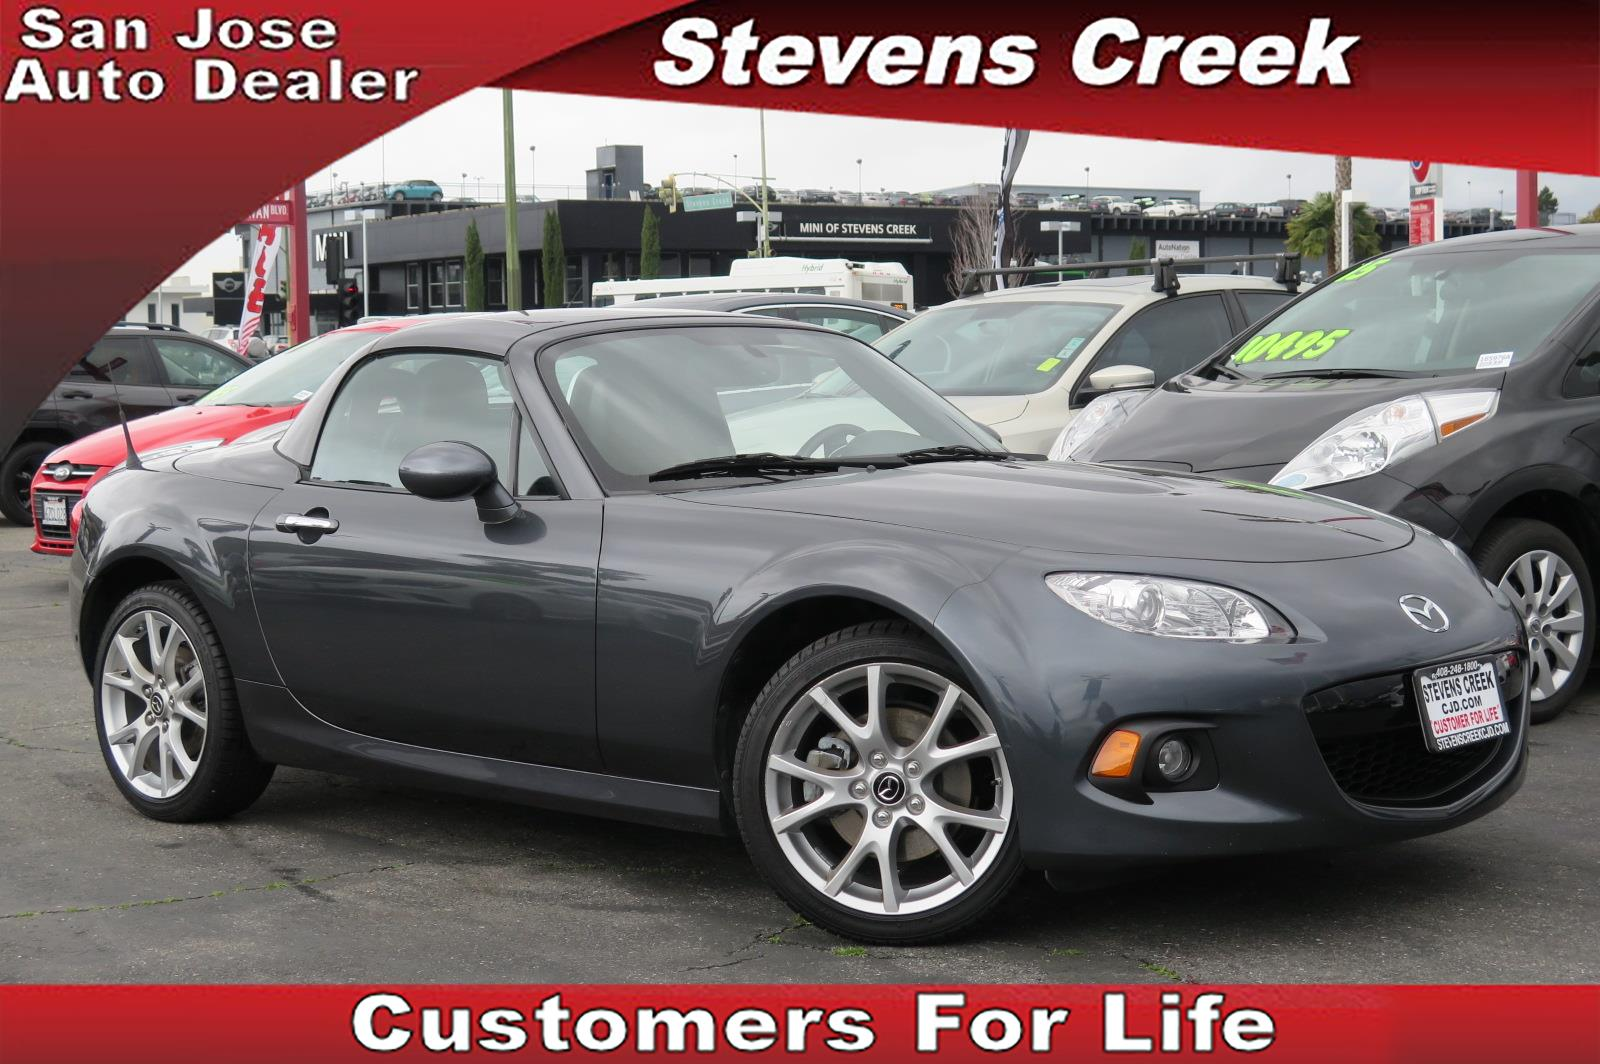 2015 MAZDA MIATA MX-5 gray 20l 4cyl automatic leather  power windows  tilt wheel  amfm st